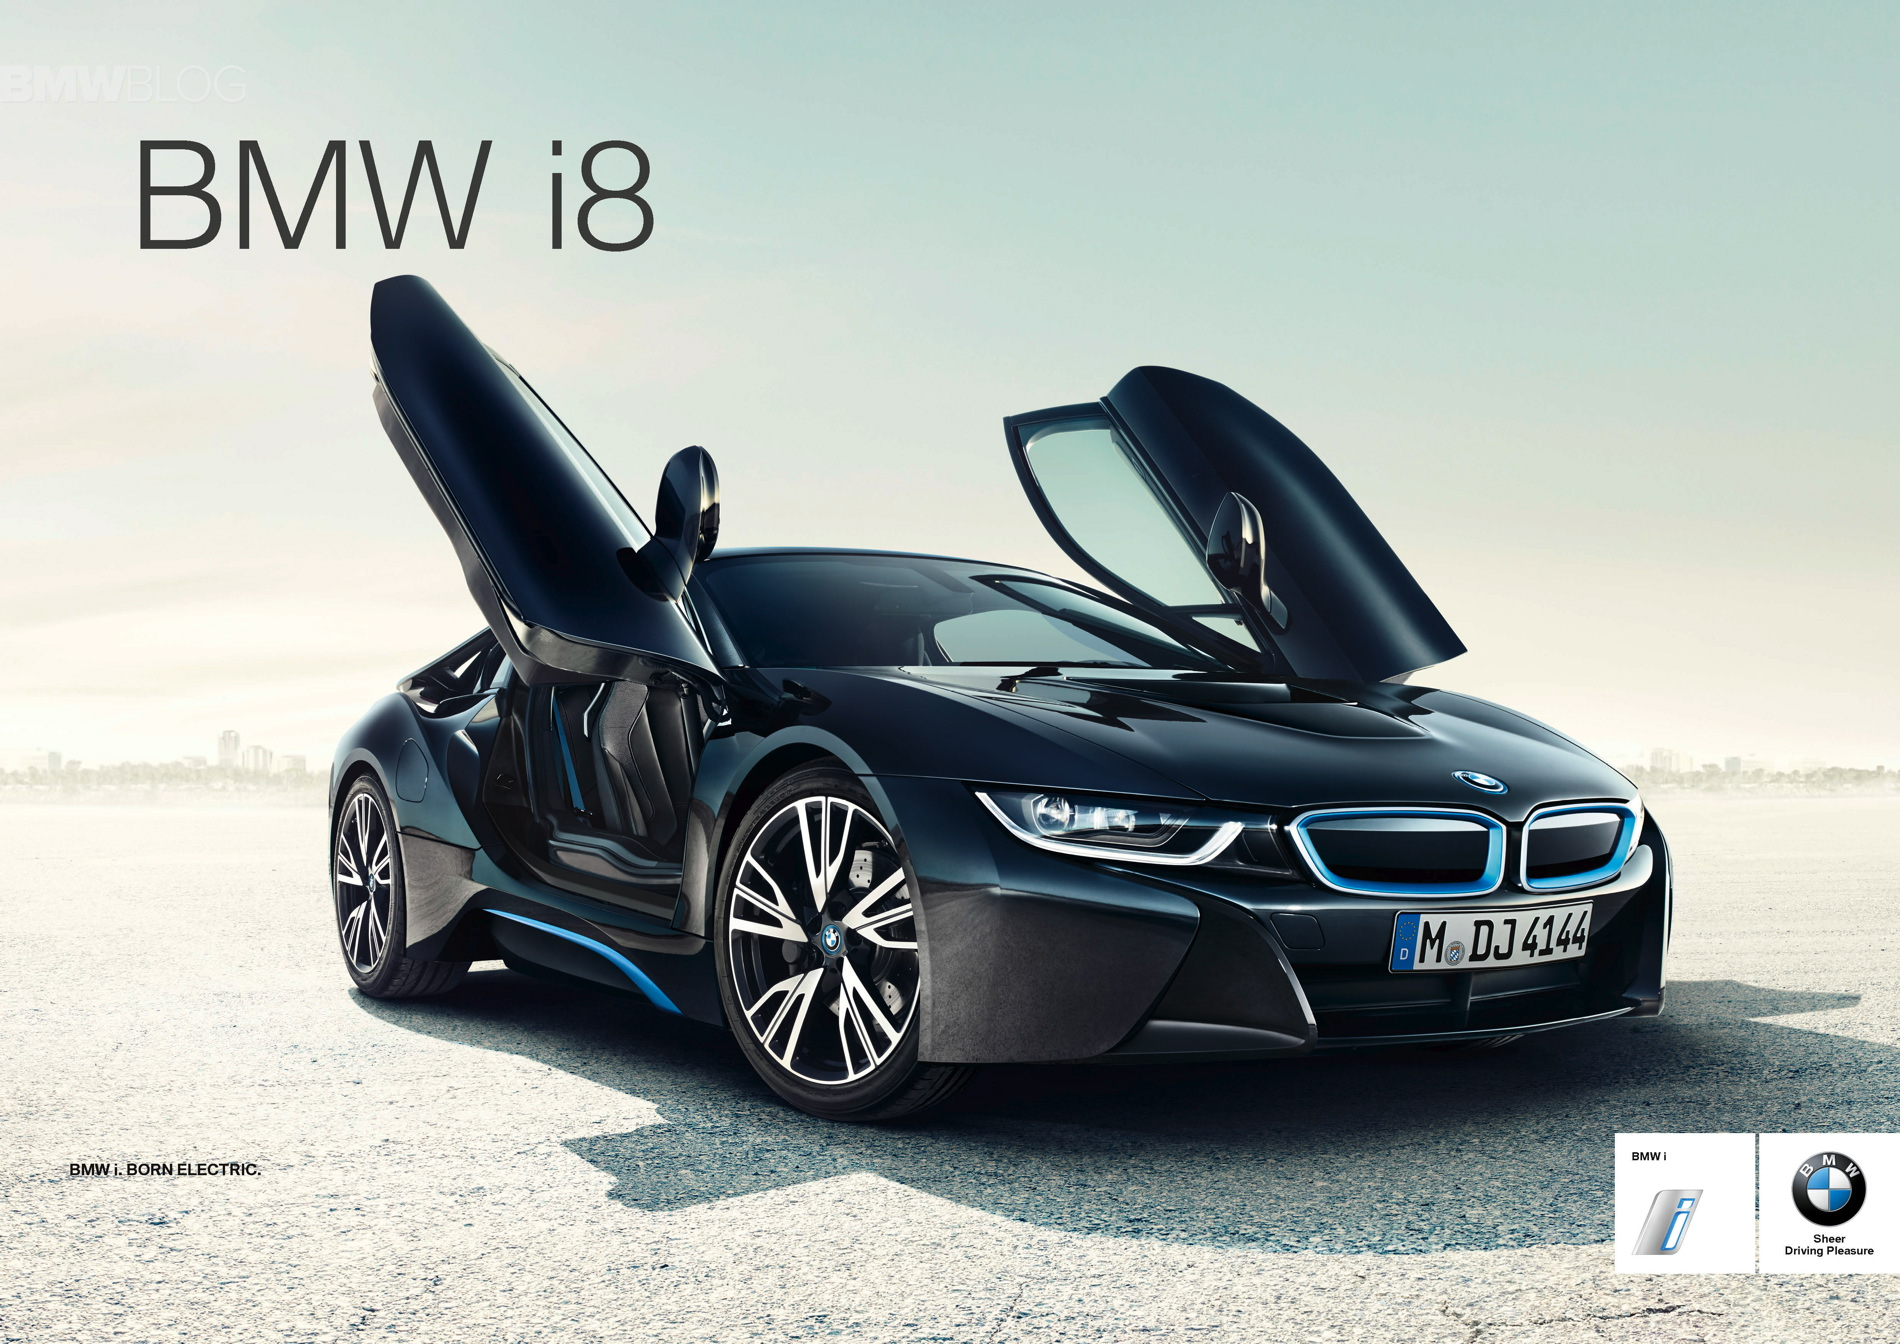 Global launch campaign for BMW i8 02